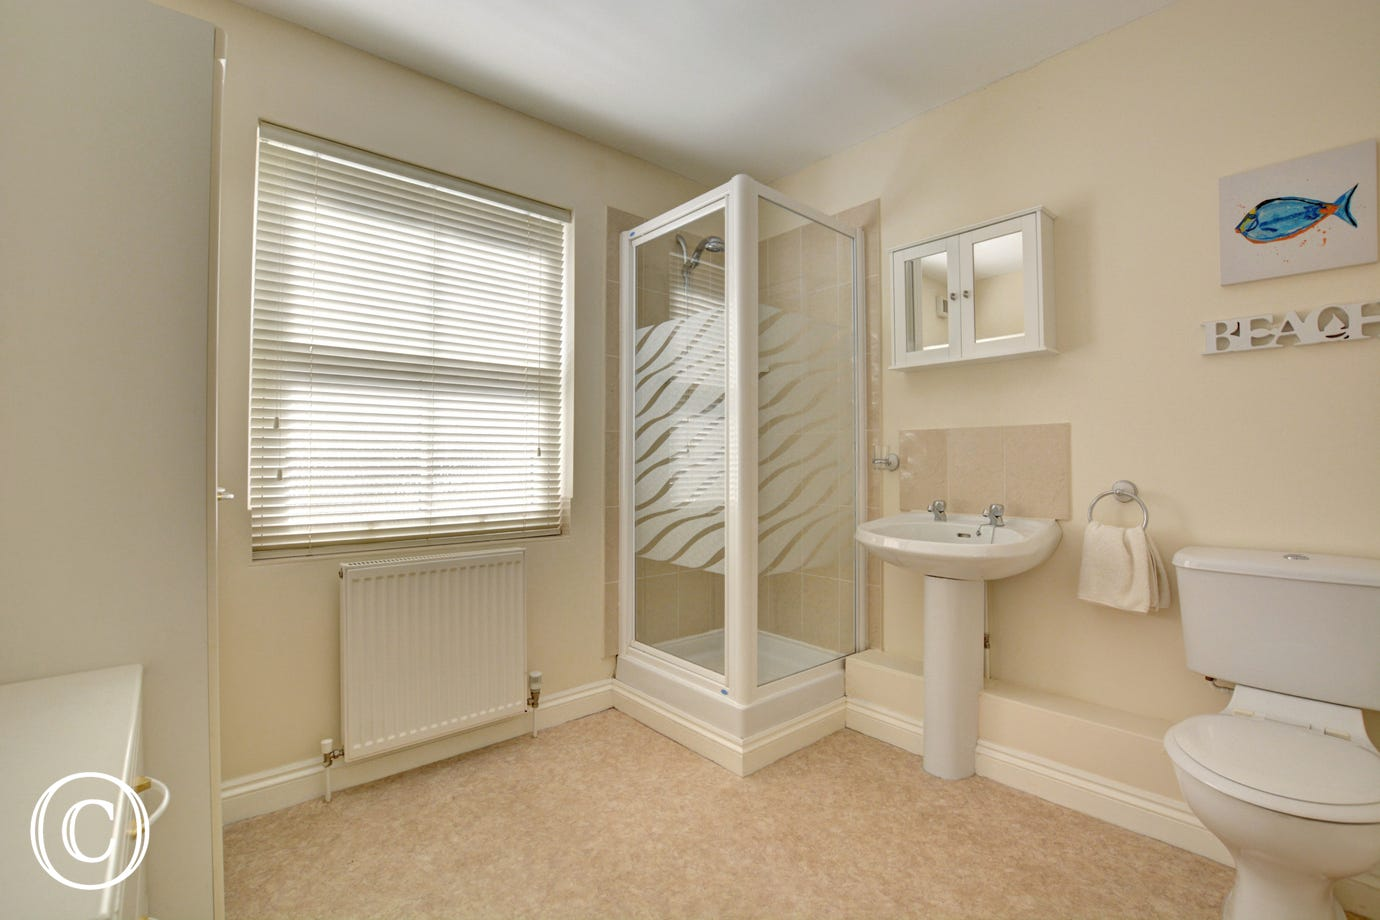 Light and airy shower room with separate cubicle